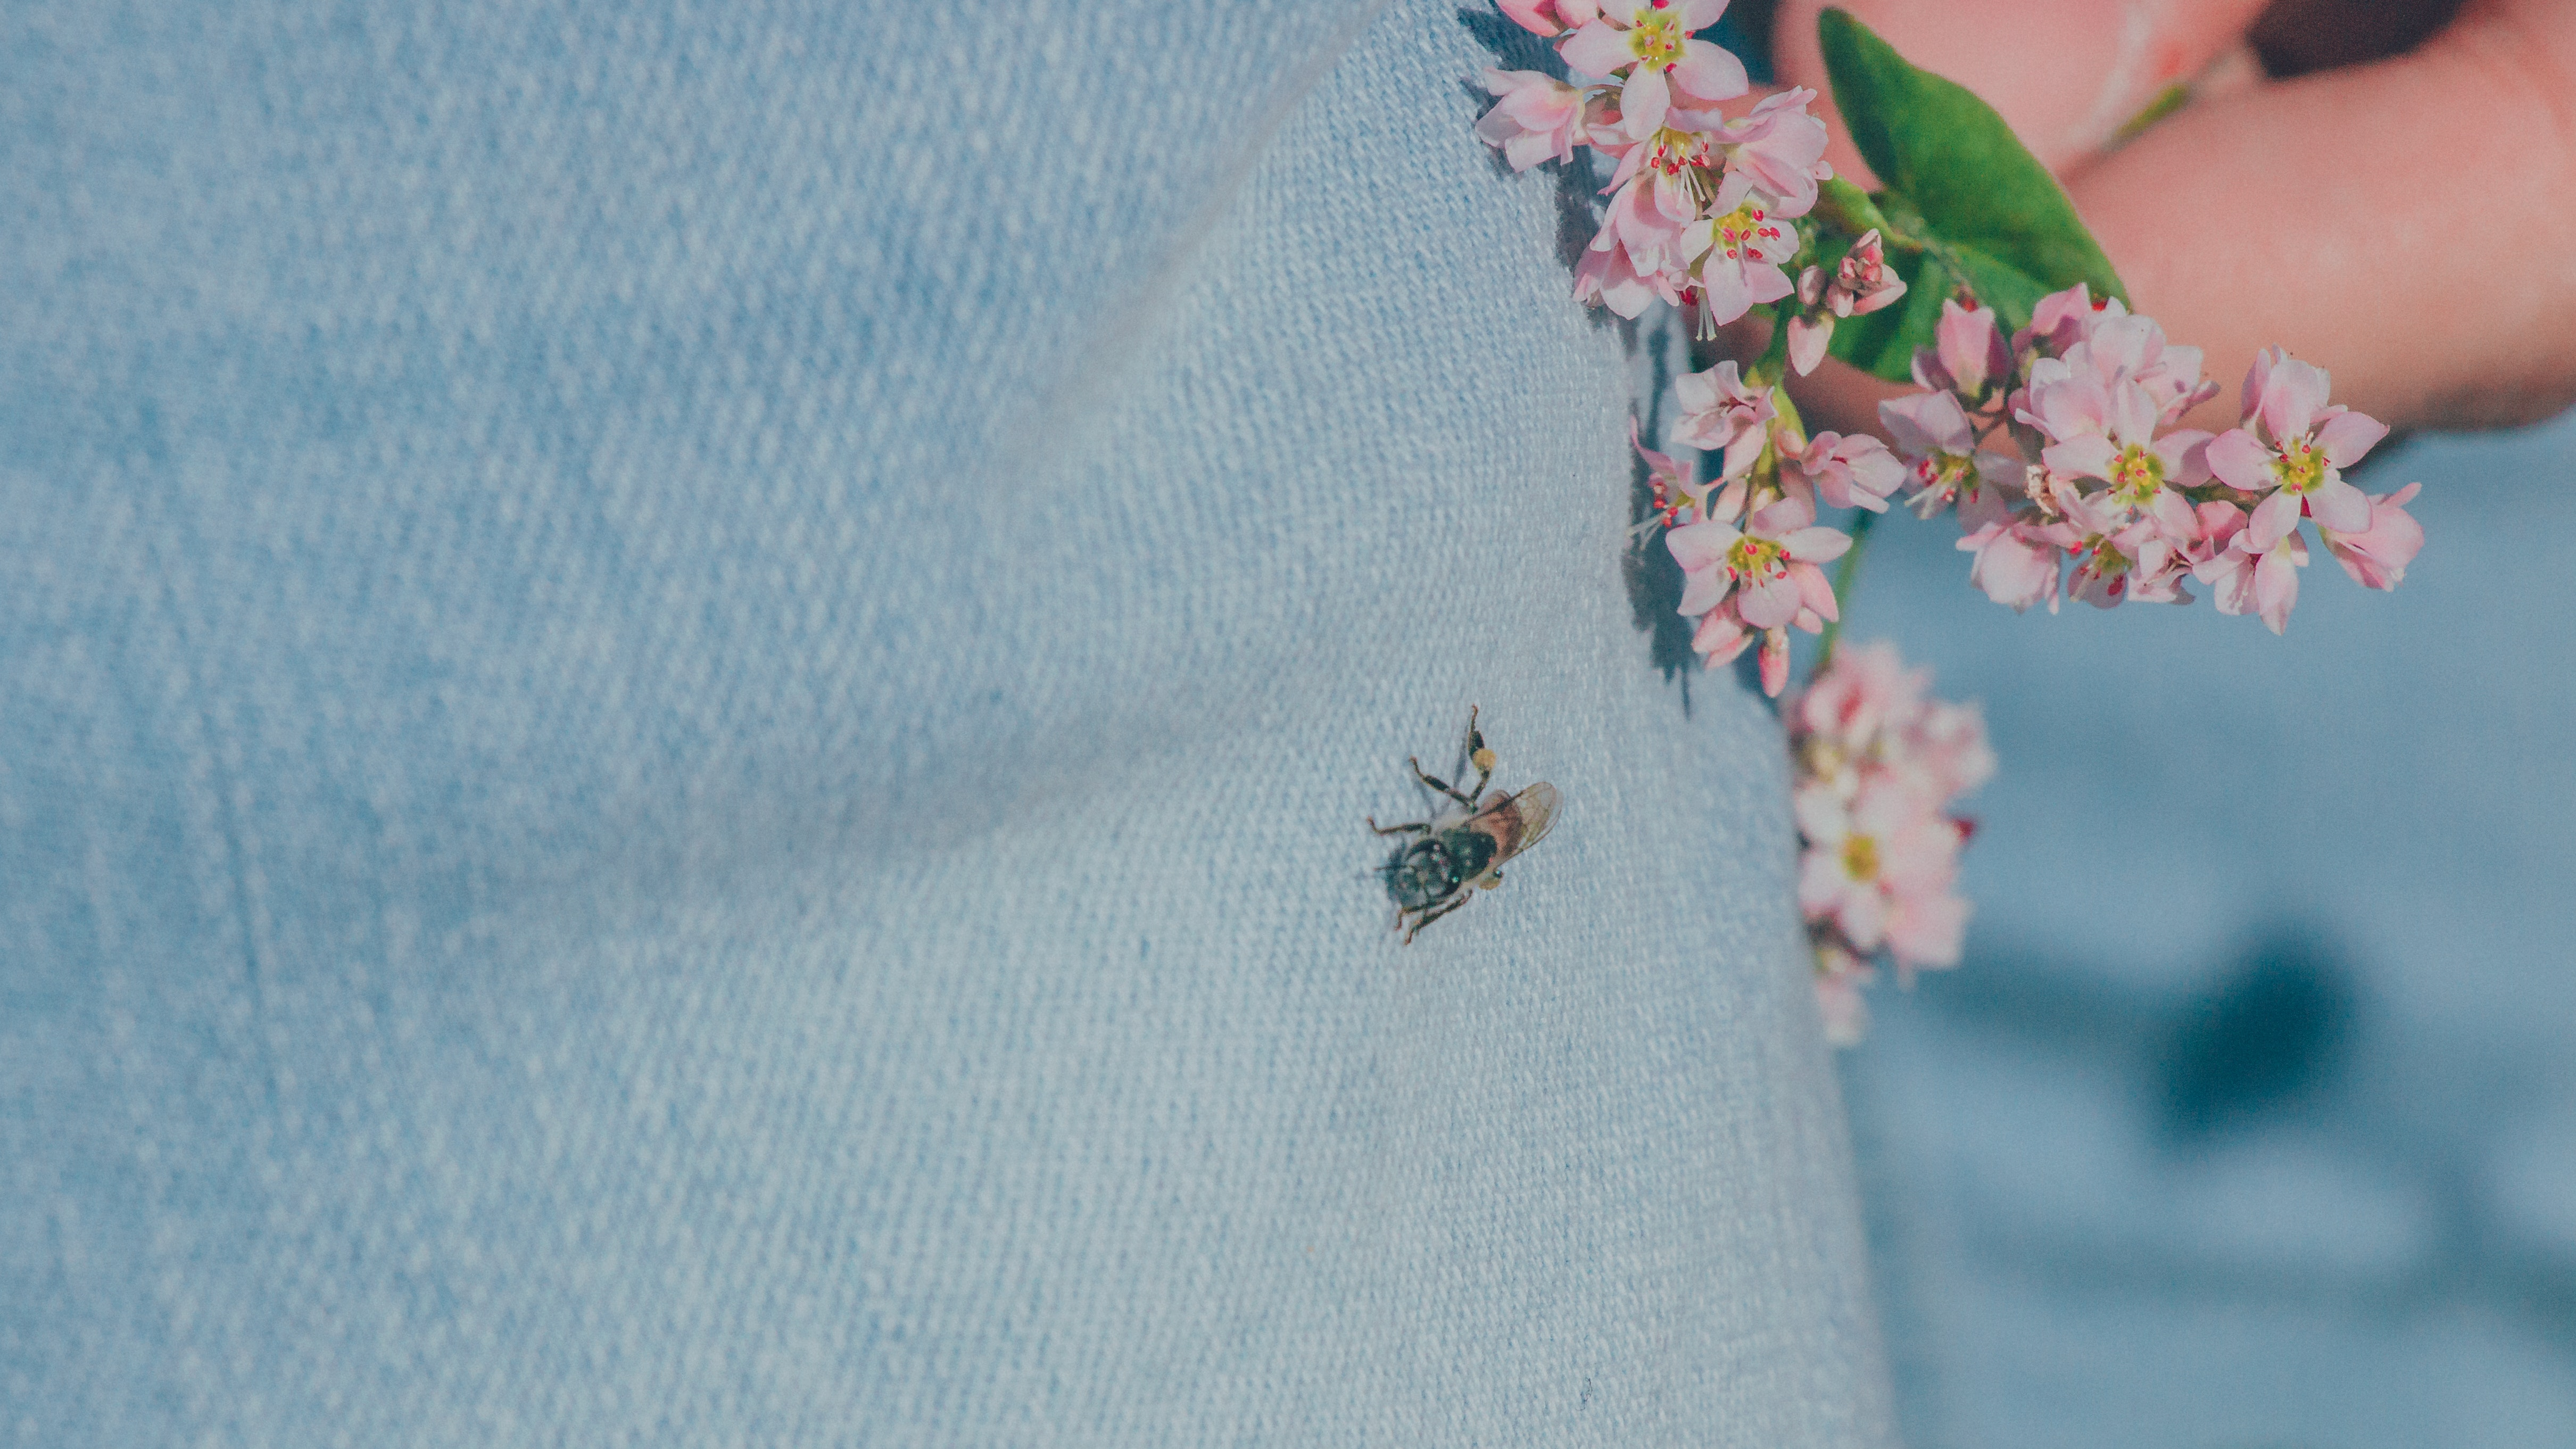 Black housefly on person's jeans photo